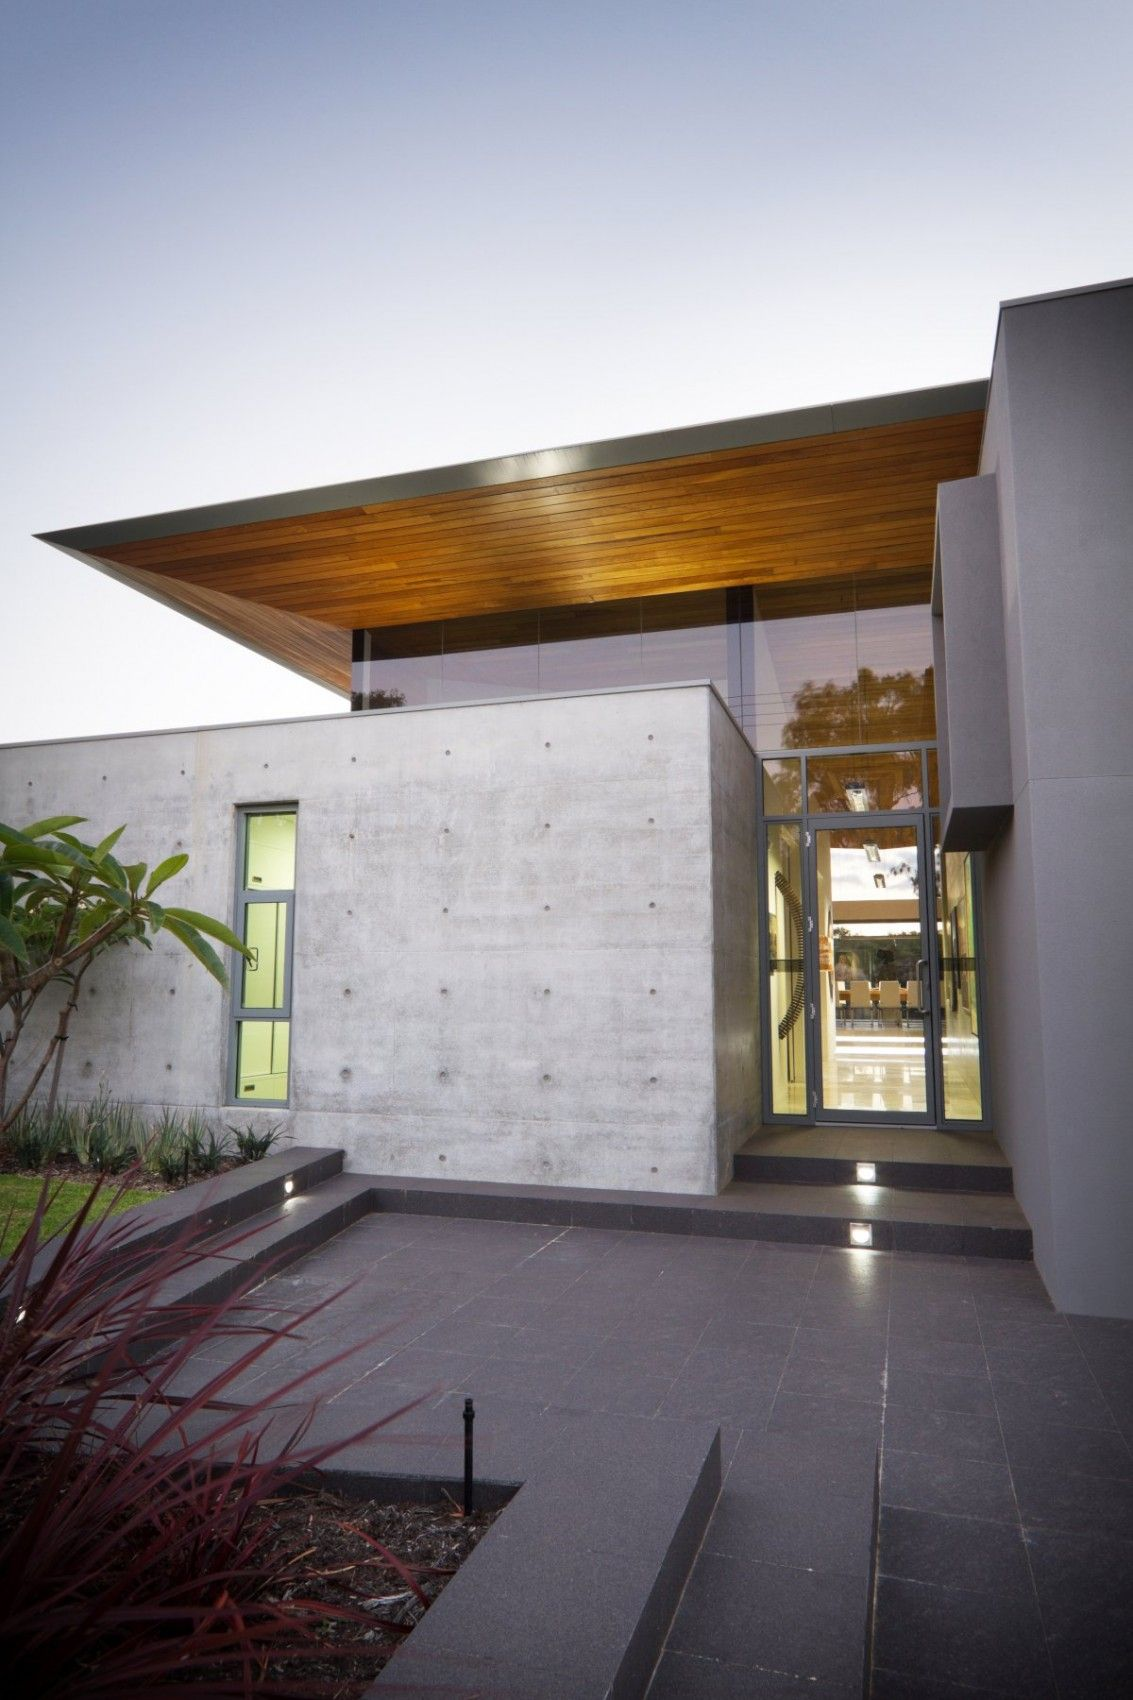 Entrance of The 24 House in Australia by Dane Design